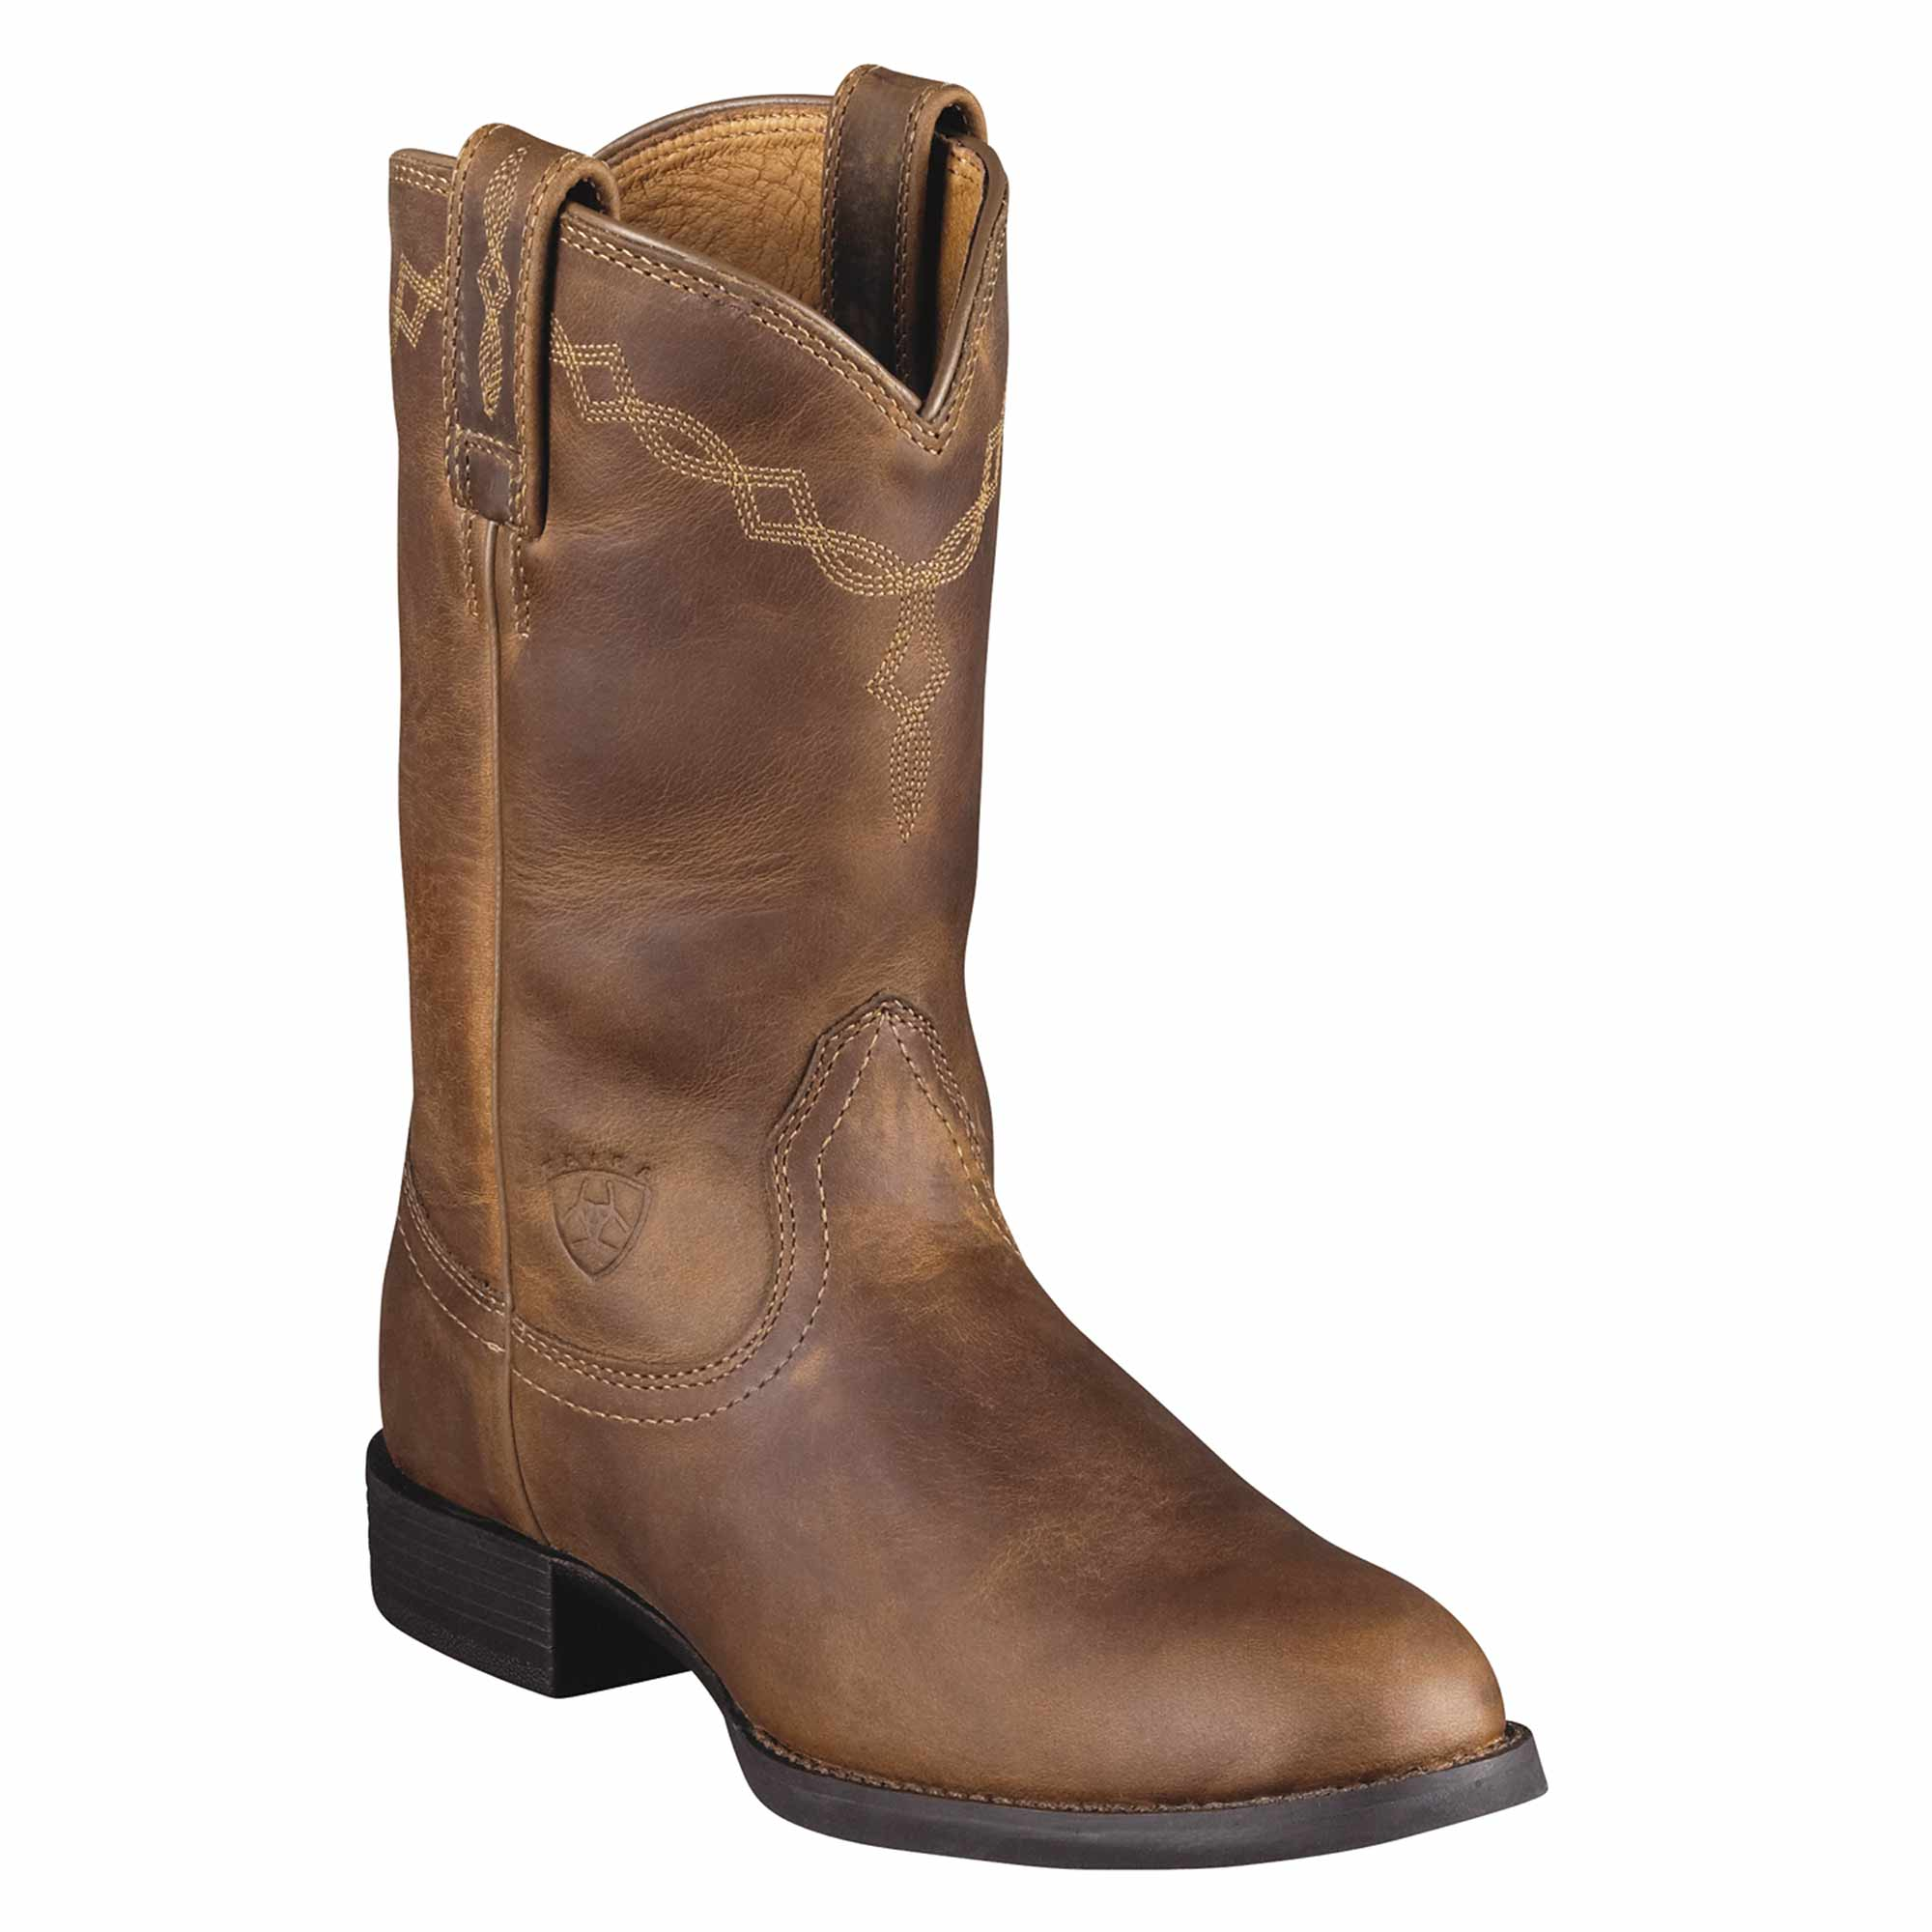 Ariat Western Boots Women's Heritage Roper Distressed Brown.